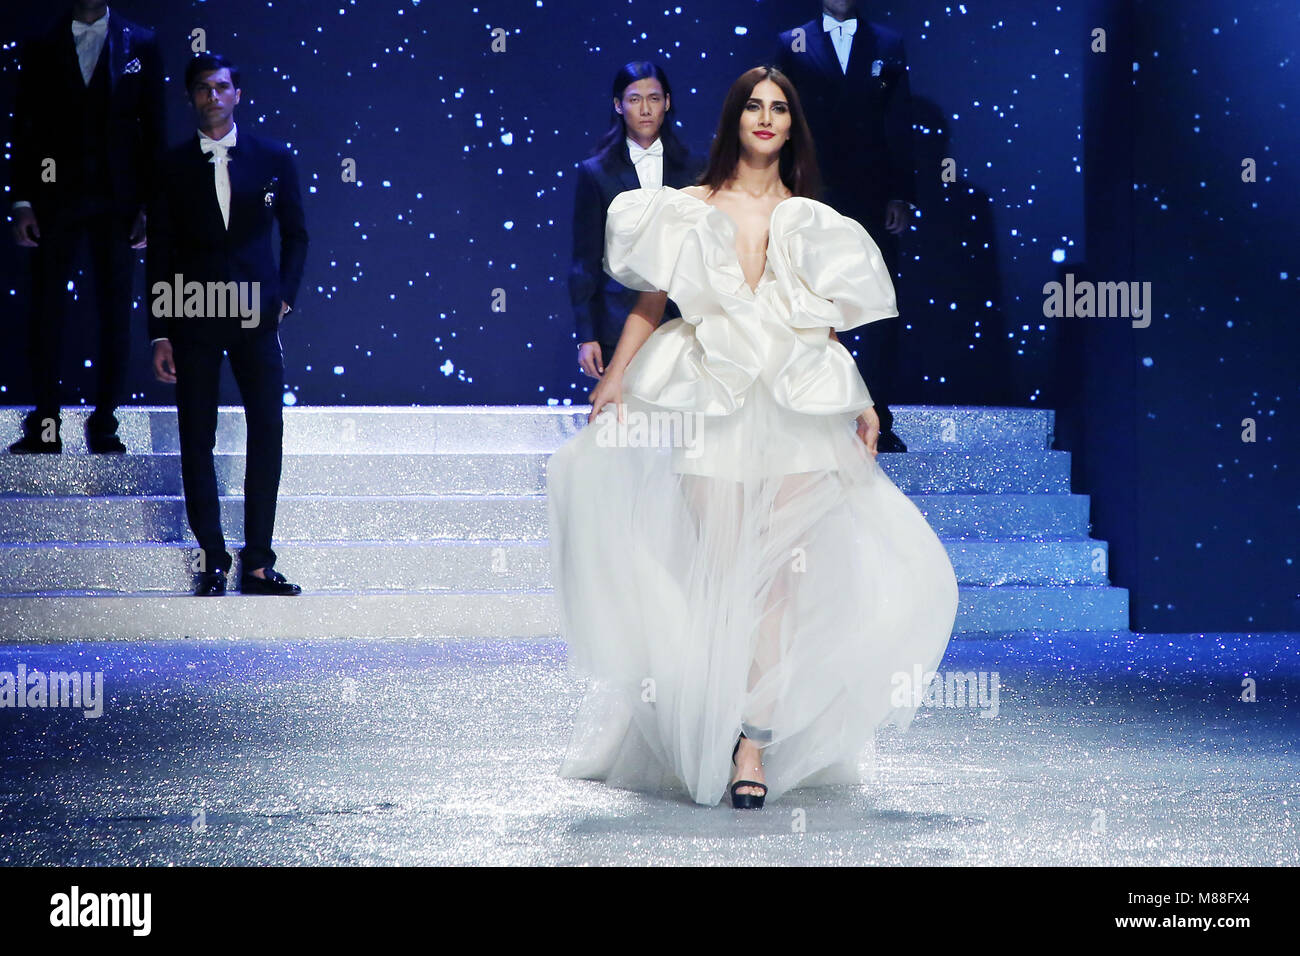 New Delhi India 14th Apr 2018 Bollywood Actress Vani Kapoor Walk Stock Photo Alamy